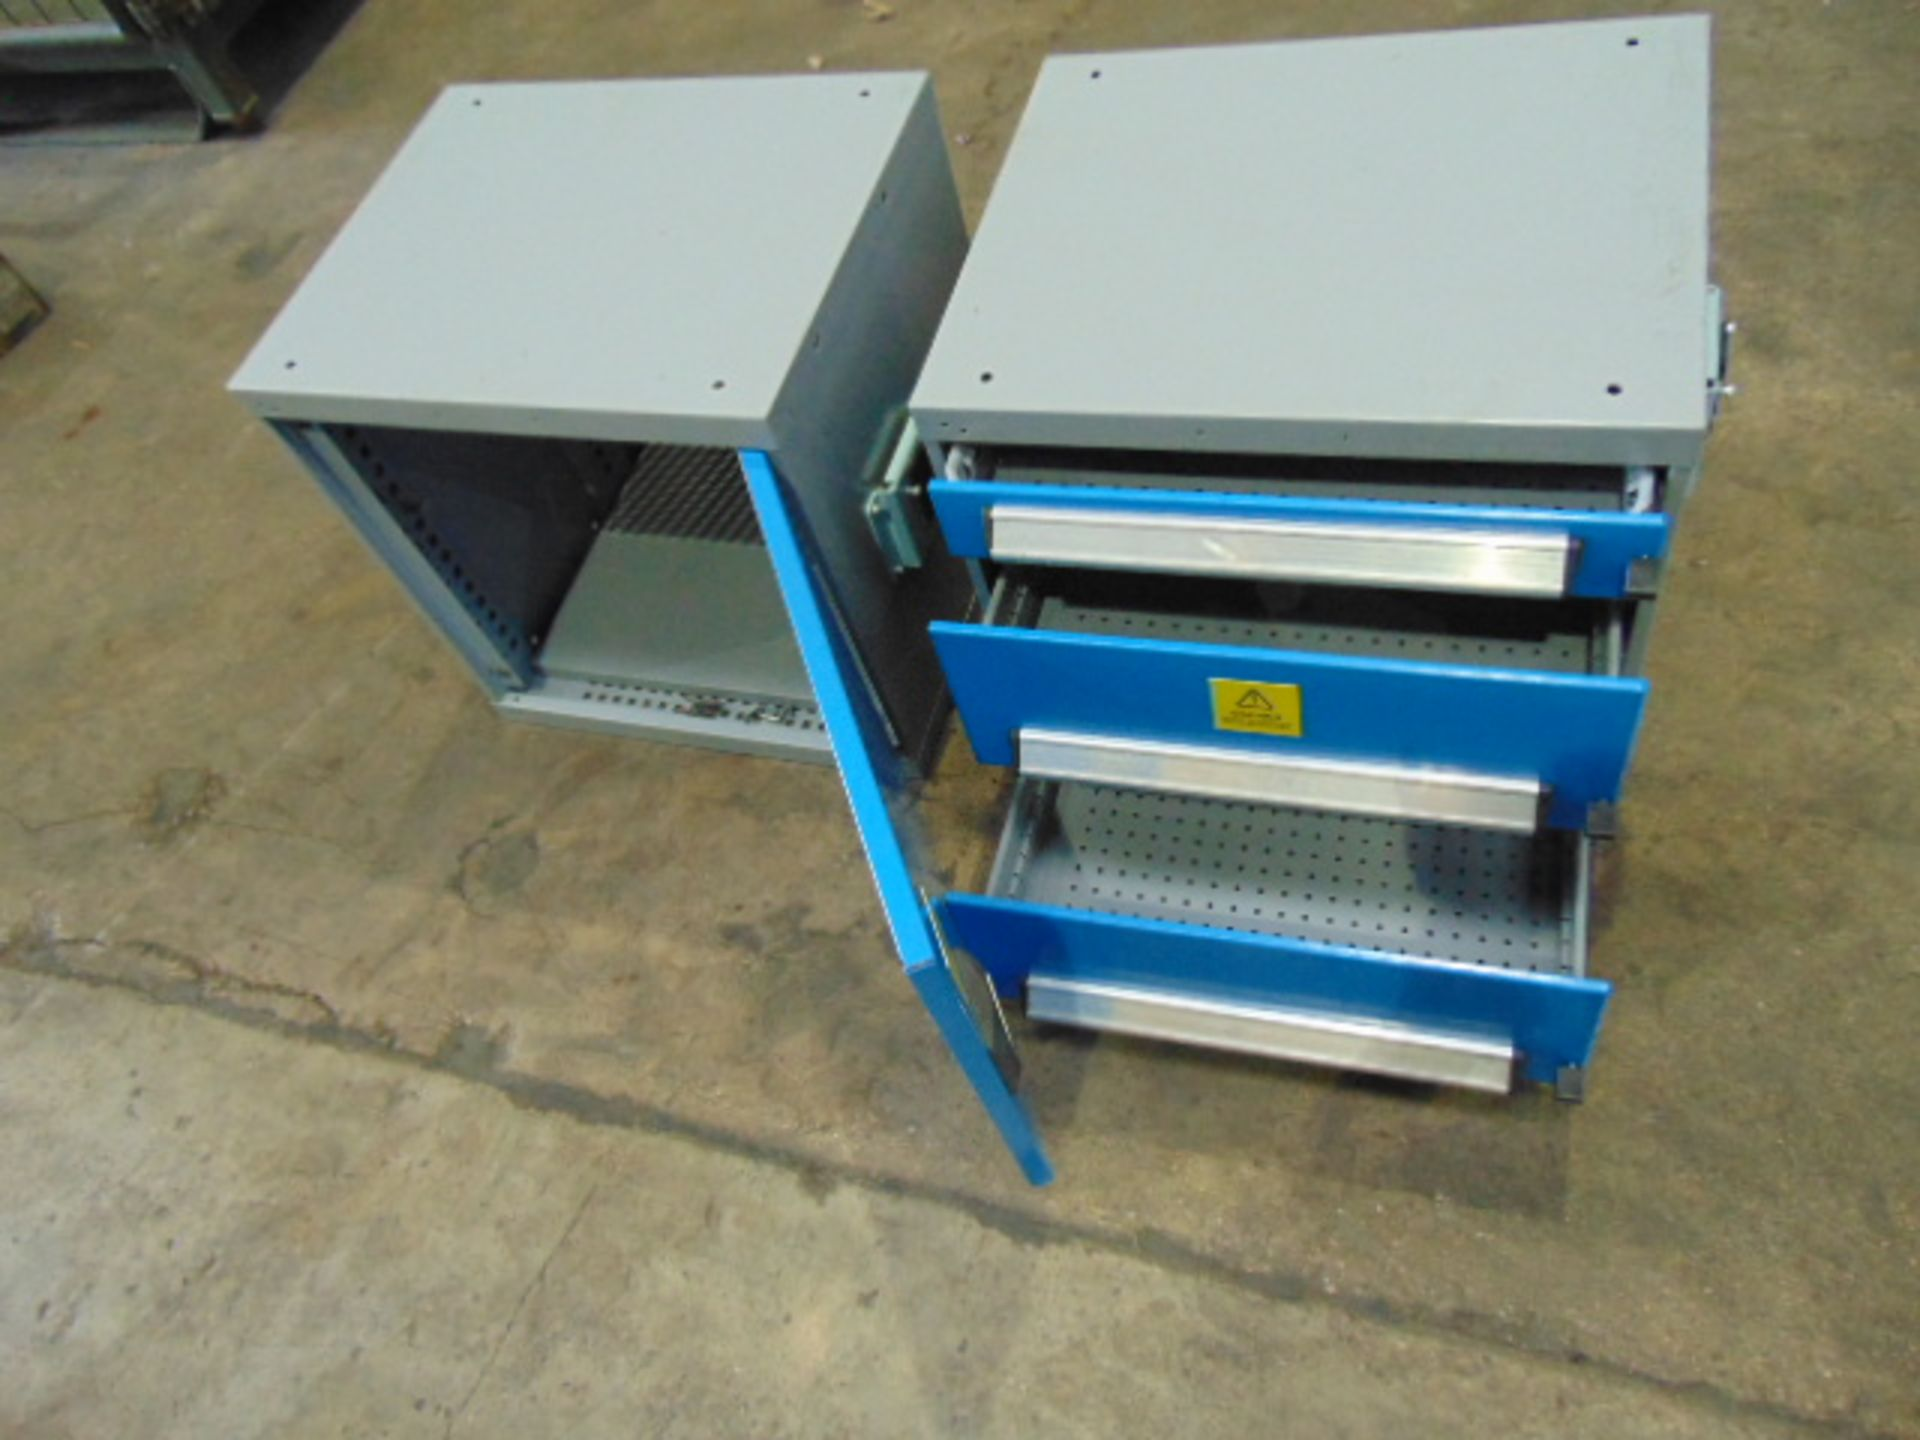 Lot 25851 - Heavy Duty Storage Cabinet and Drawers